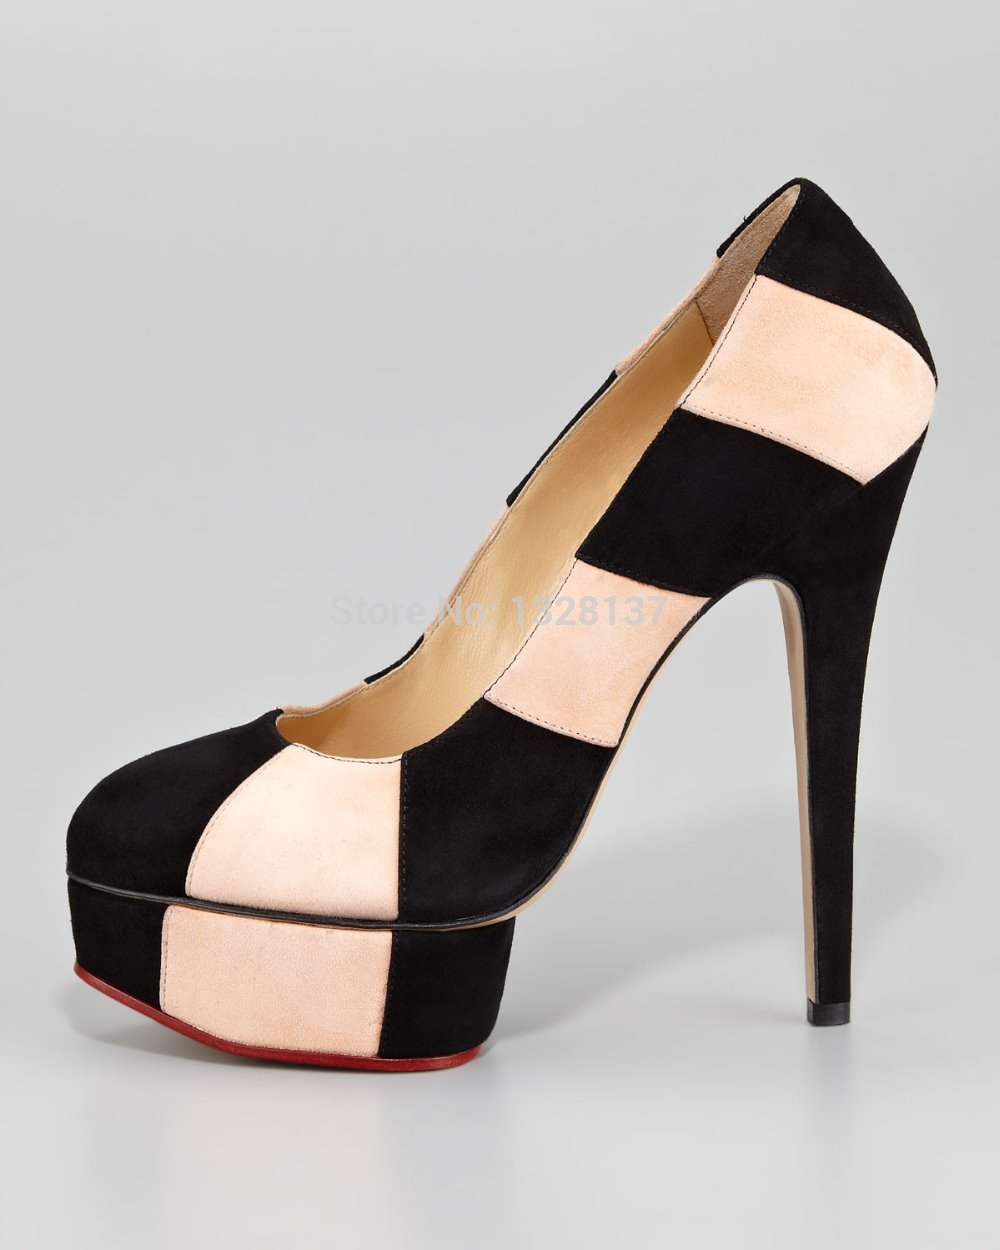 Popular Red Bottom Shoes for Women Cheap-Buy Cheap Red Bottom Shoes for Women Cheap ...